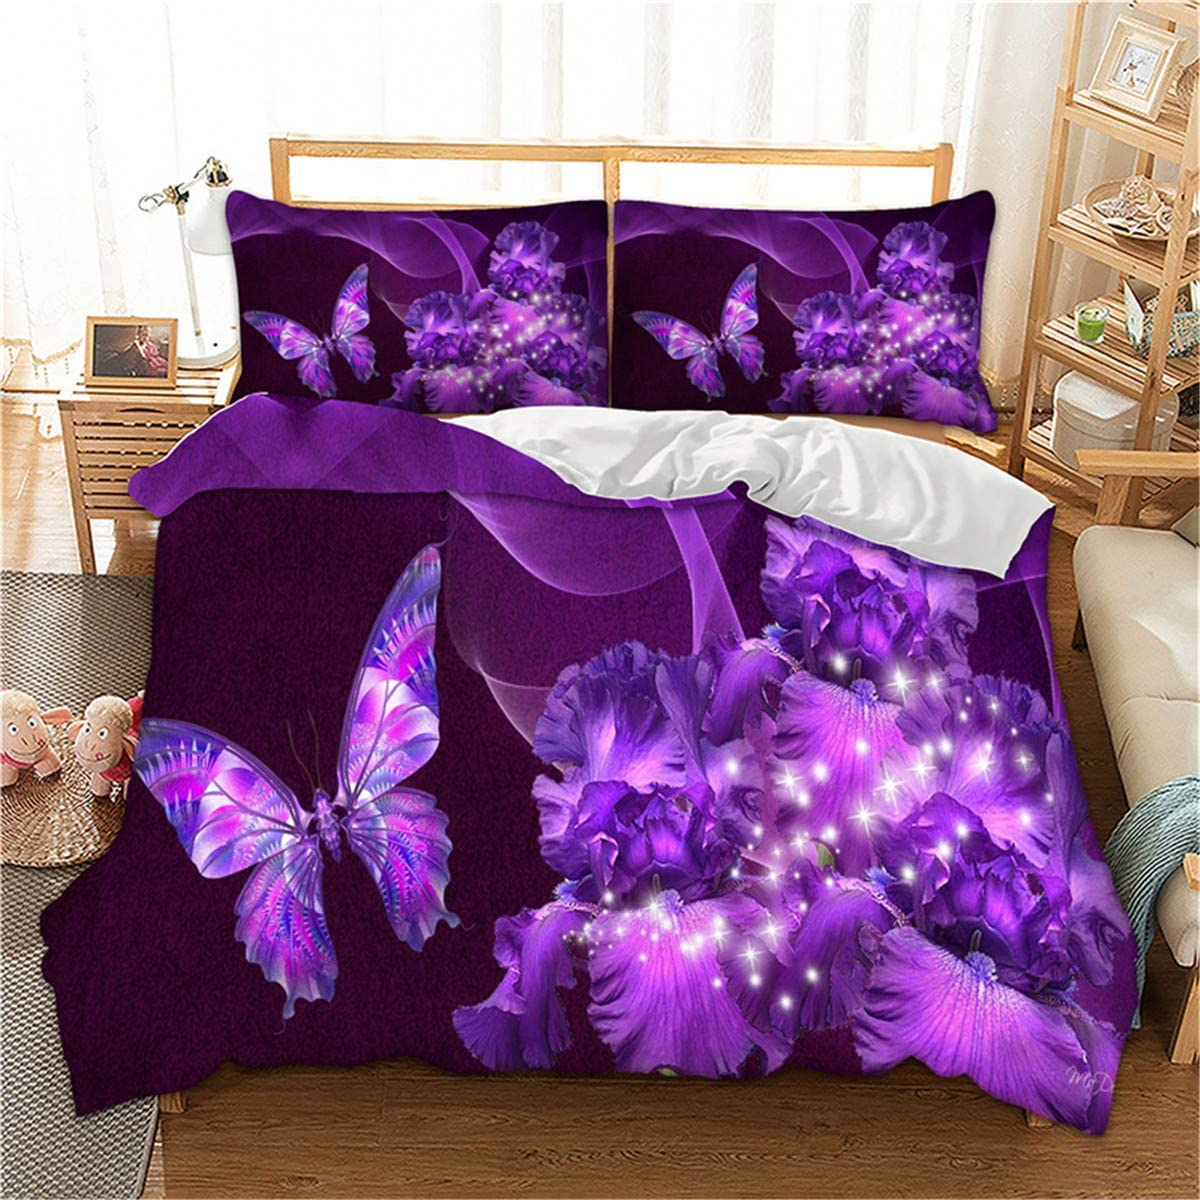 """Luxury Purple Bedding Duvet Cover Set with Zipper Closure- 3D Galaxy Purple Butterfly Floral Printed Bedding Set, Queen (90""""x90"""")- 3Pieces (1 Duvet Cover +2 Pillowcases) -Soft Microfiber"""